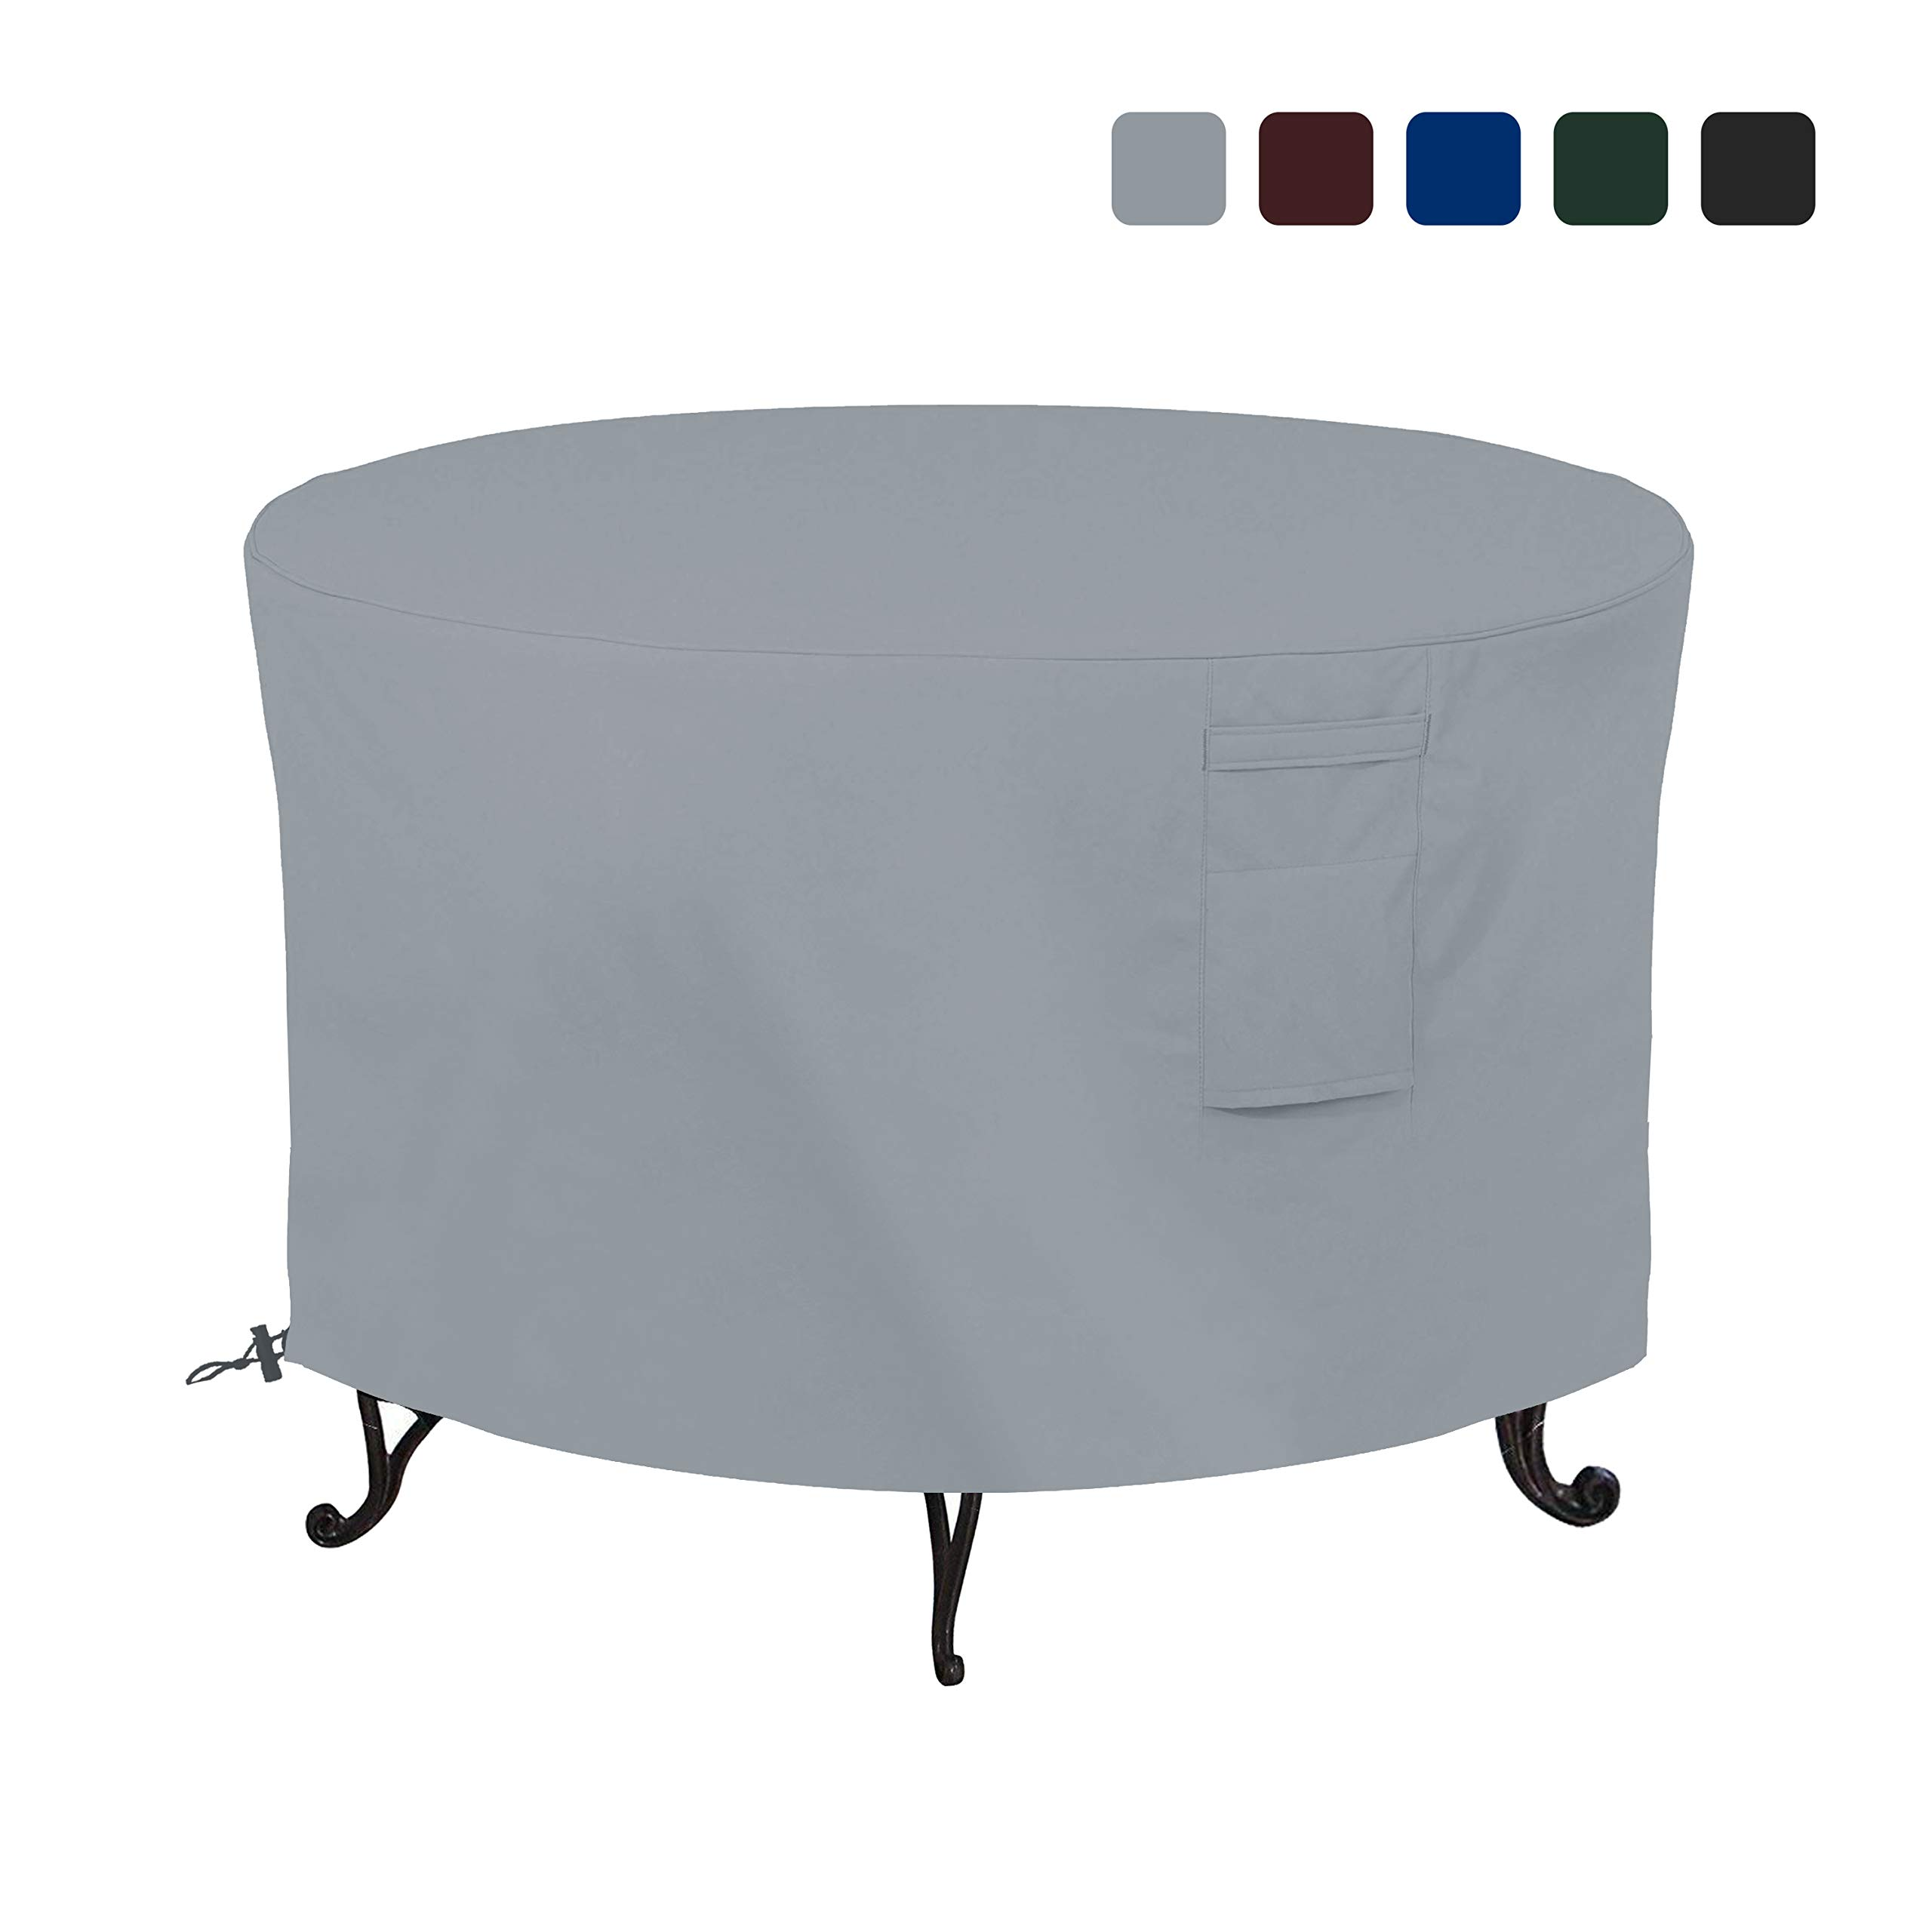 Firepit Covers Round 18 Oz Waterproof - 100% UV & Weather Resistant Full Coverage Custom Size Firepit Cover with Air Pockets & Drawstring for Snug Fit (58 Inch, Grey) by COVERS & ALL